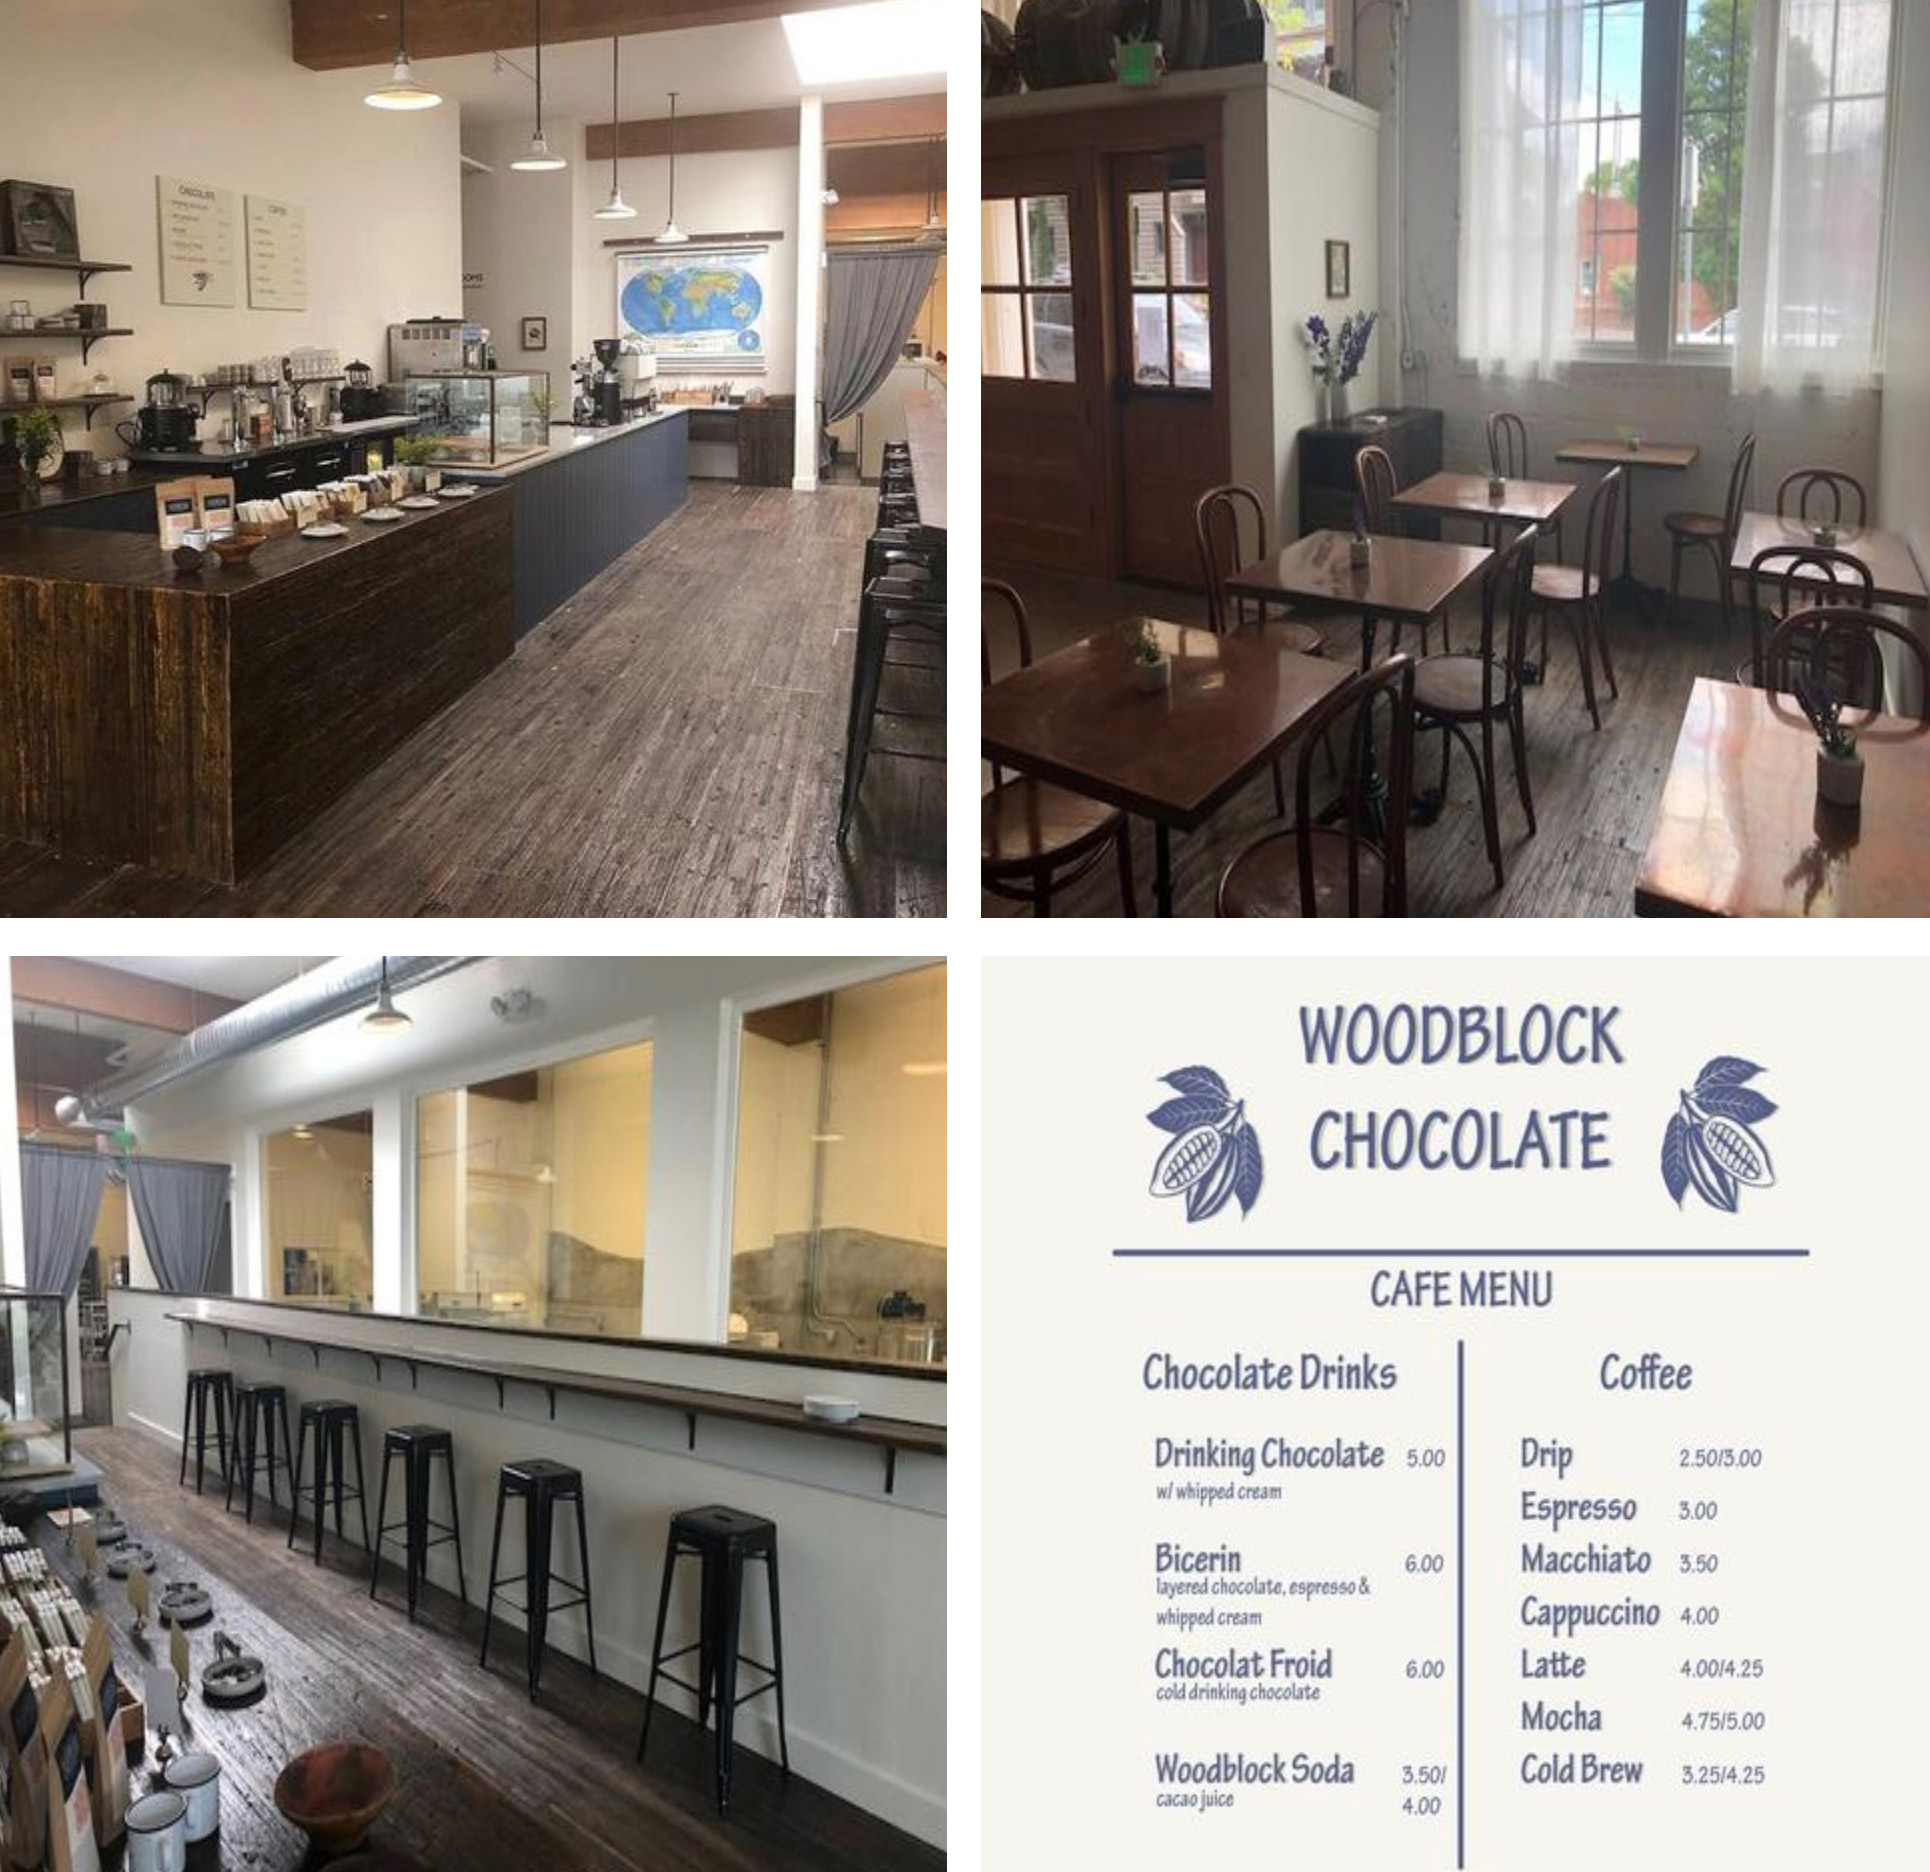 One of the neat things that separates Woodblock Chocolate from other specialty shops is its cafe. Indeed, there's plenty of seating available to come in an enjoy truly incredible chocolate drinks and coffee. Even a cacao juice cola is available! Super cool. Images Courtesy: woodblockchocolate.com